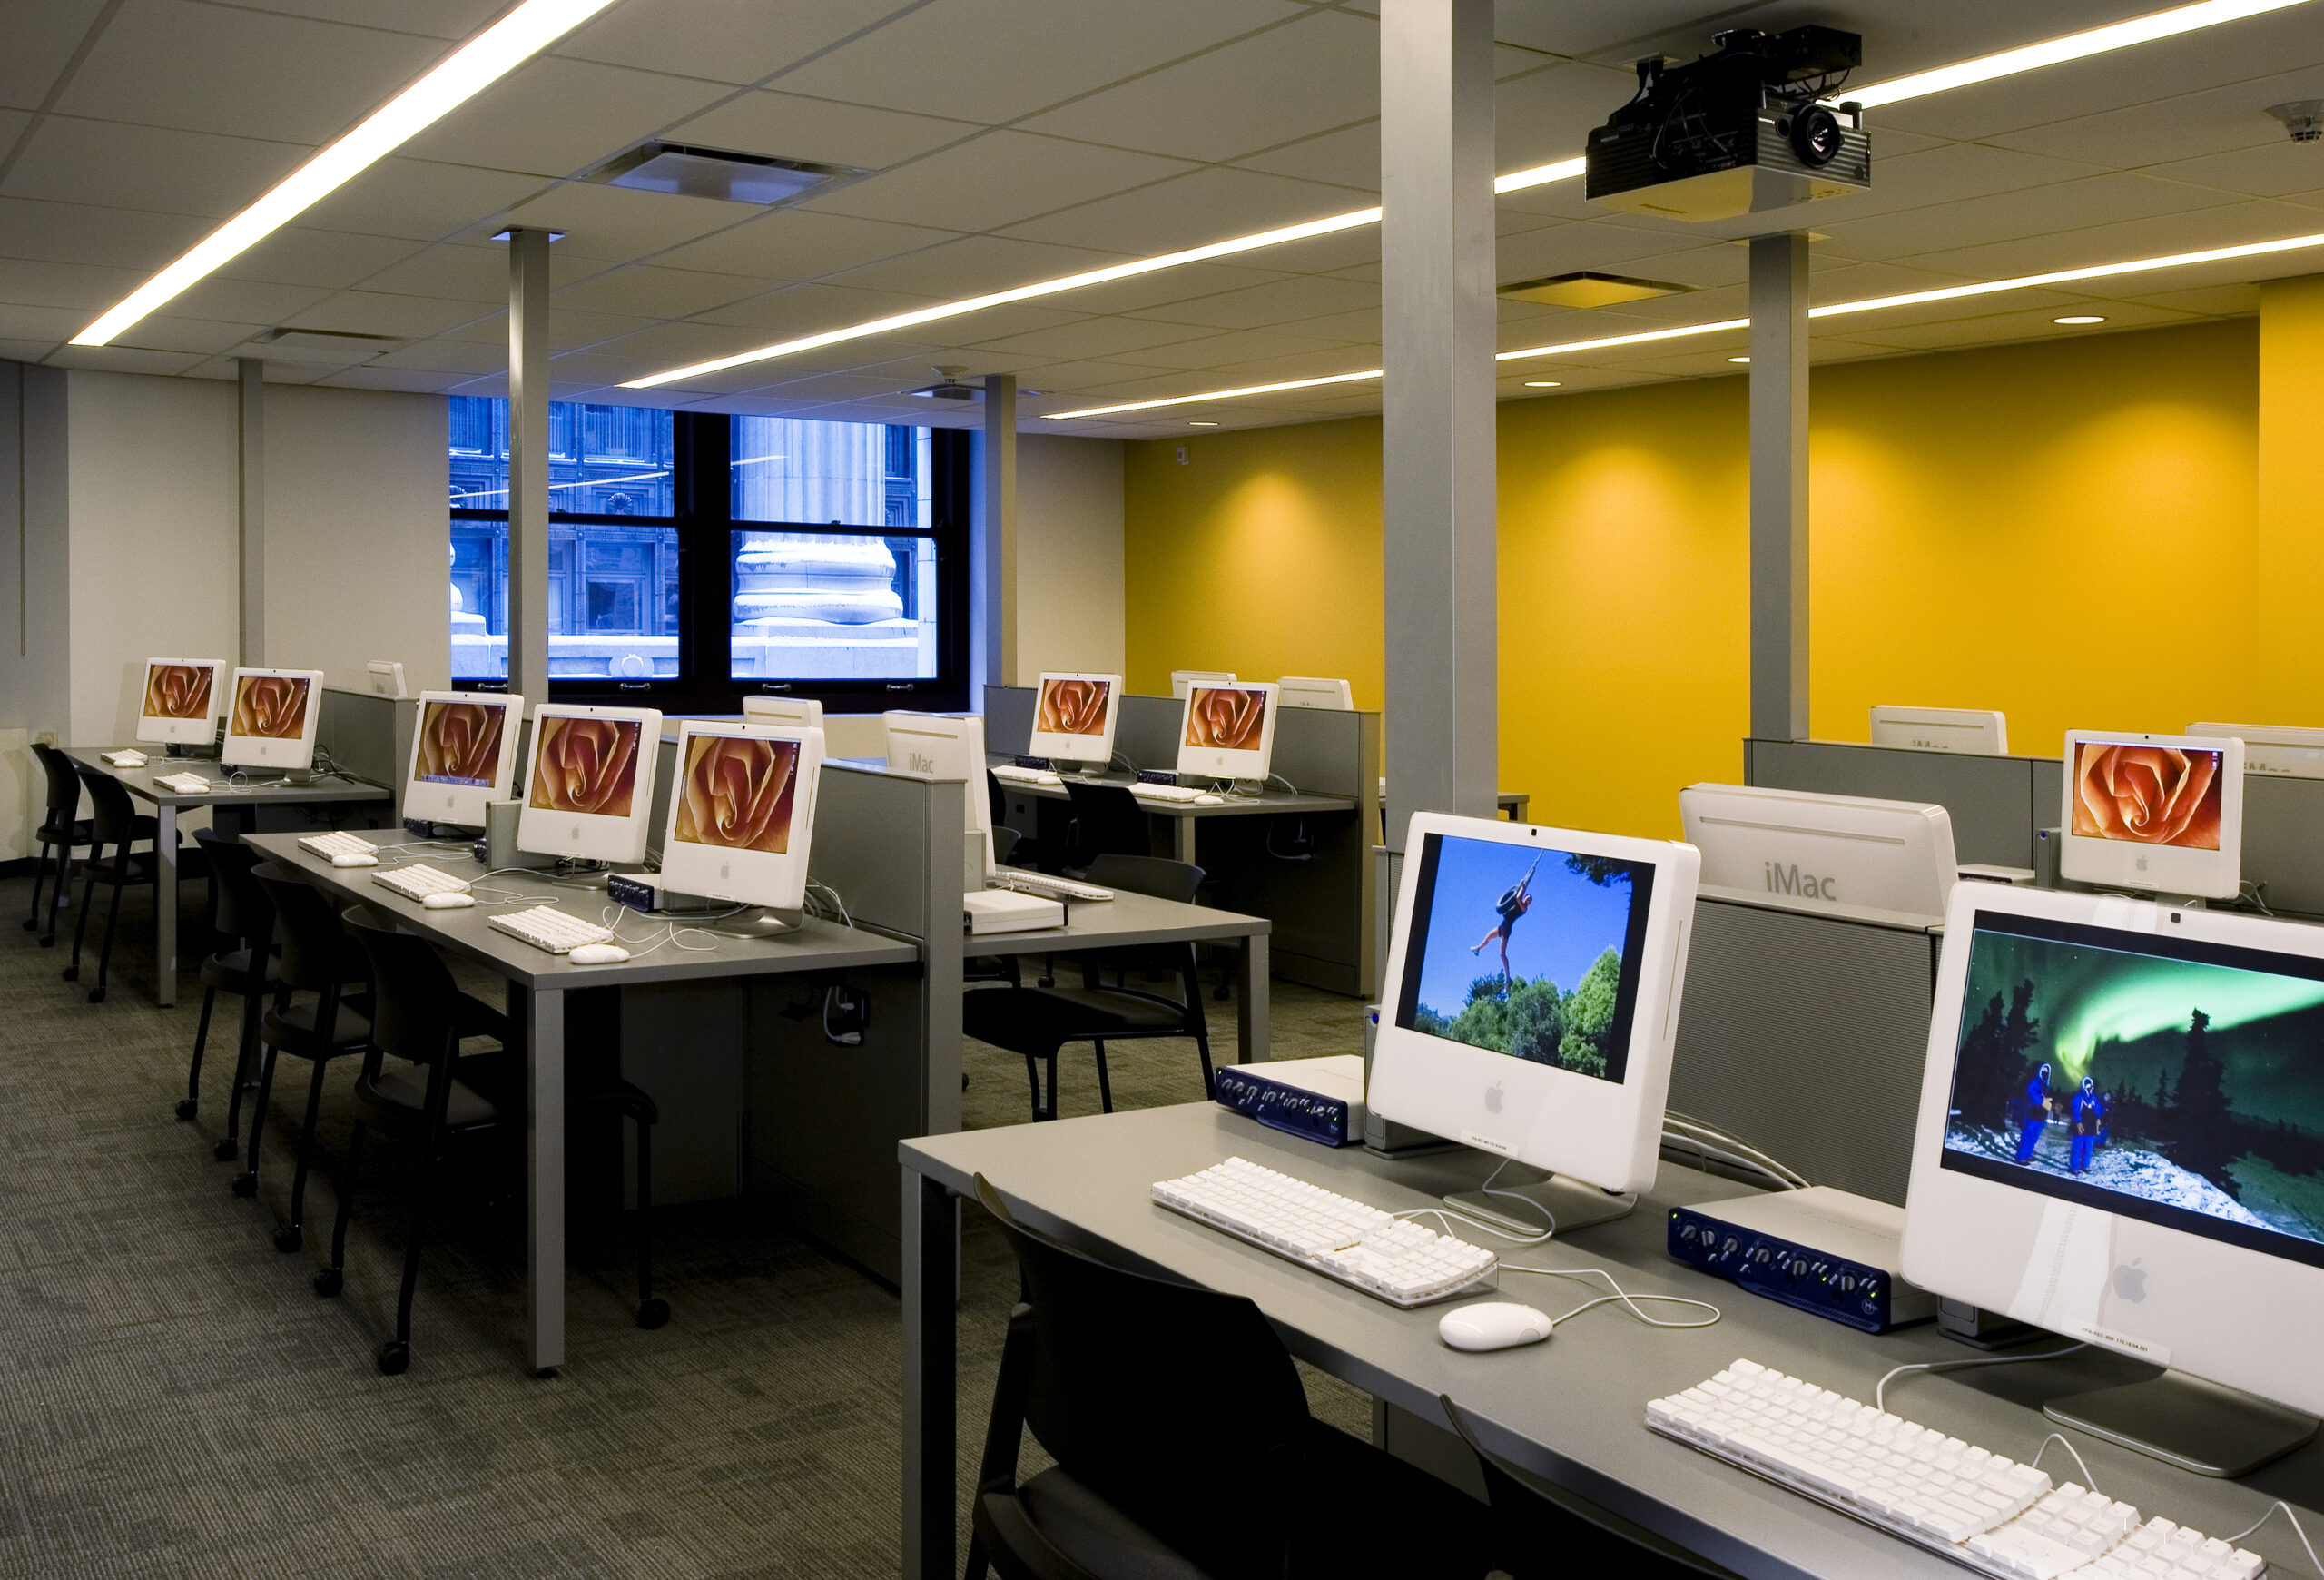 Computer classroom at Flashpoint Chicago.